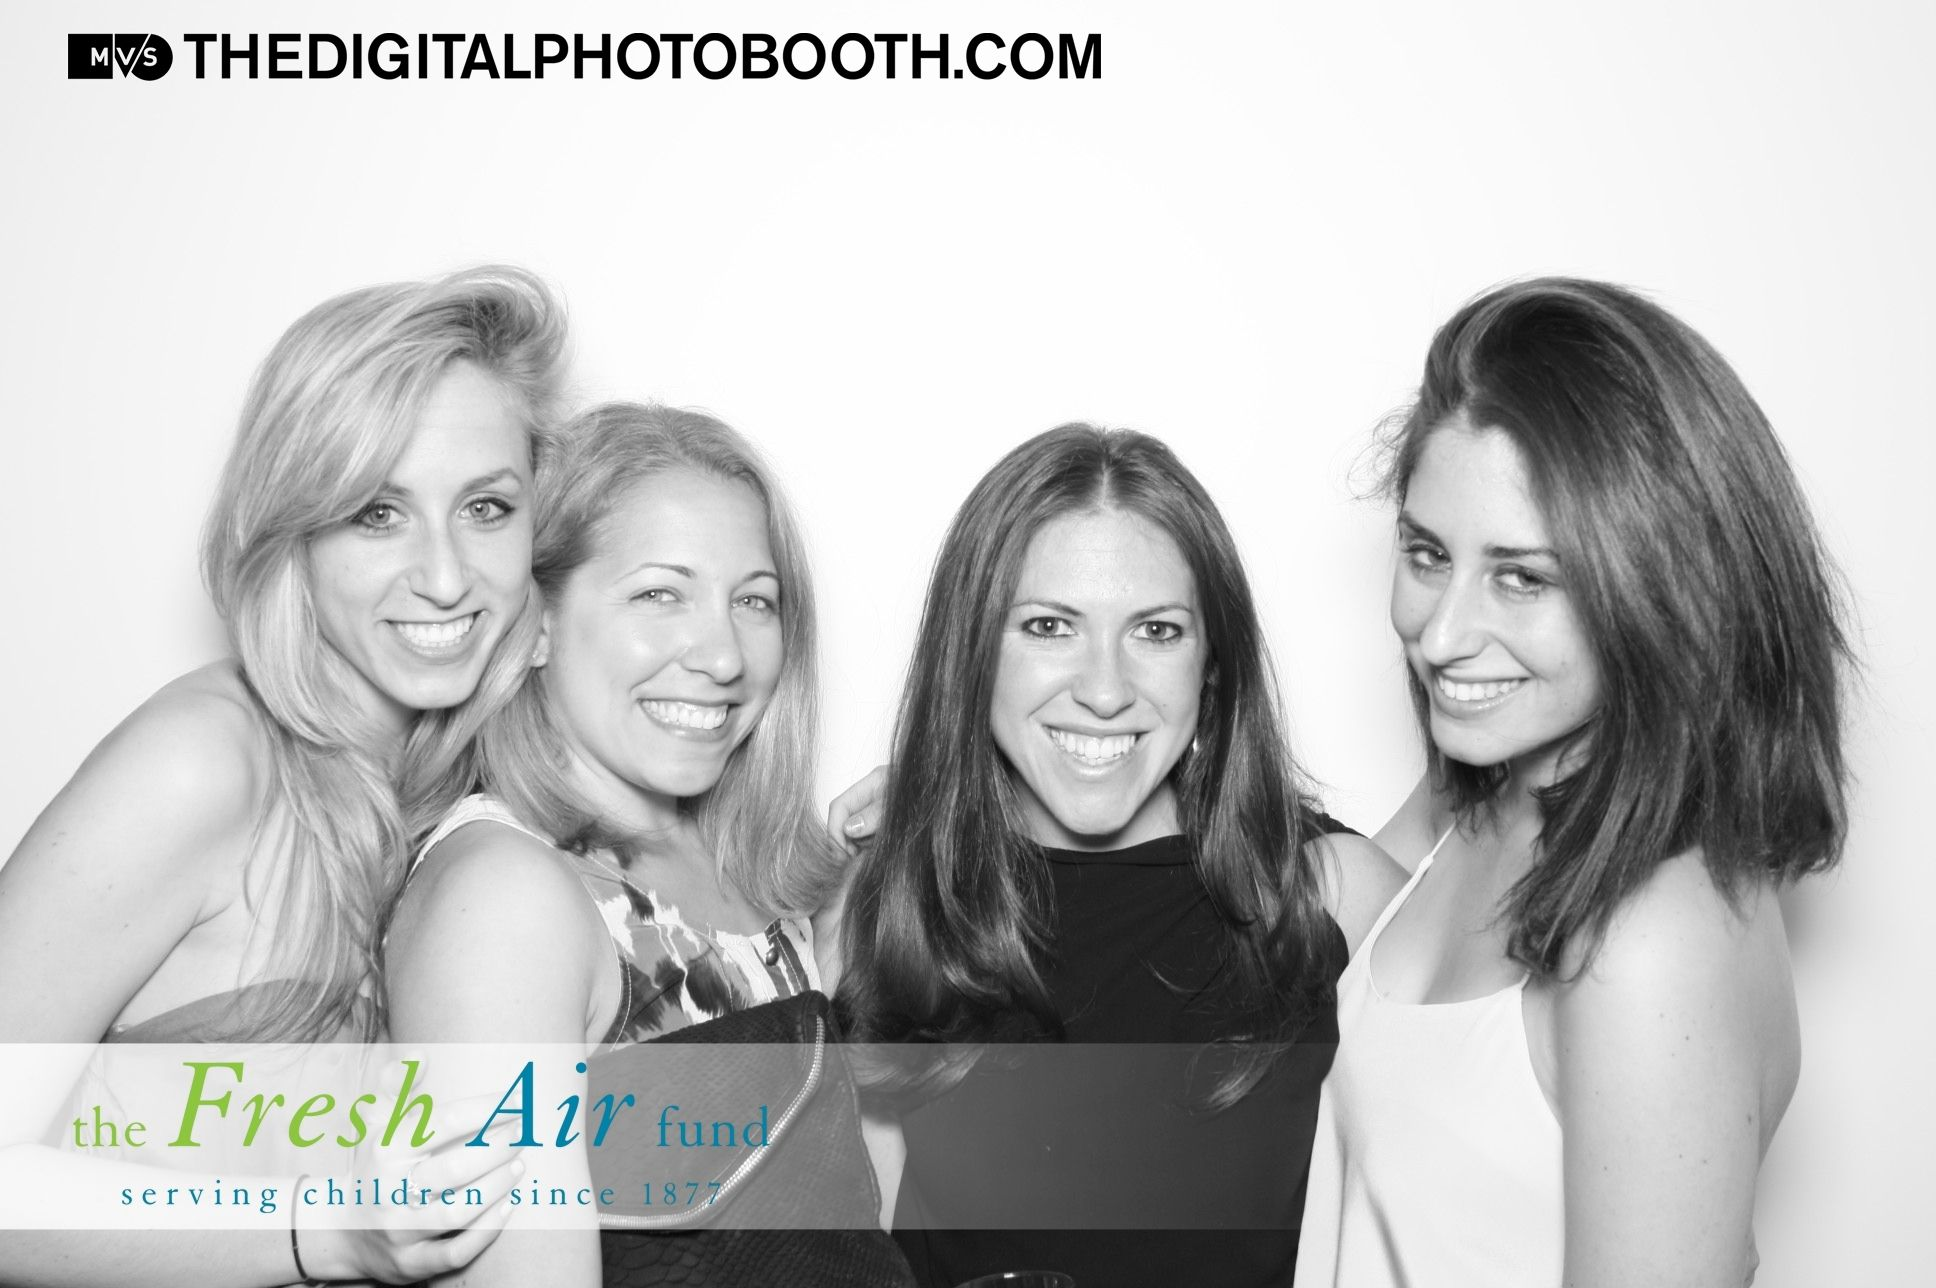 Thanks to everyone who came to The Fresh Air Fund's 18th Annual Spring Fling on April 19th at Espace. MVS Studio Inc. provided The Digital Photo Booth to capture guests enjoying a fantastic event.